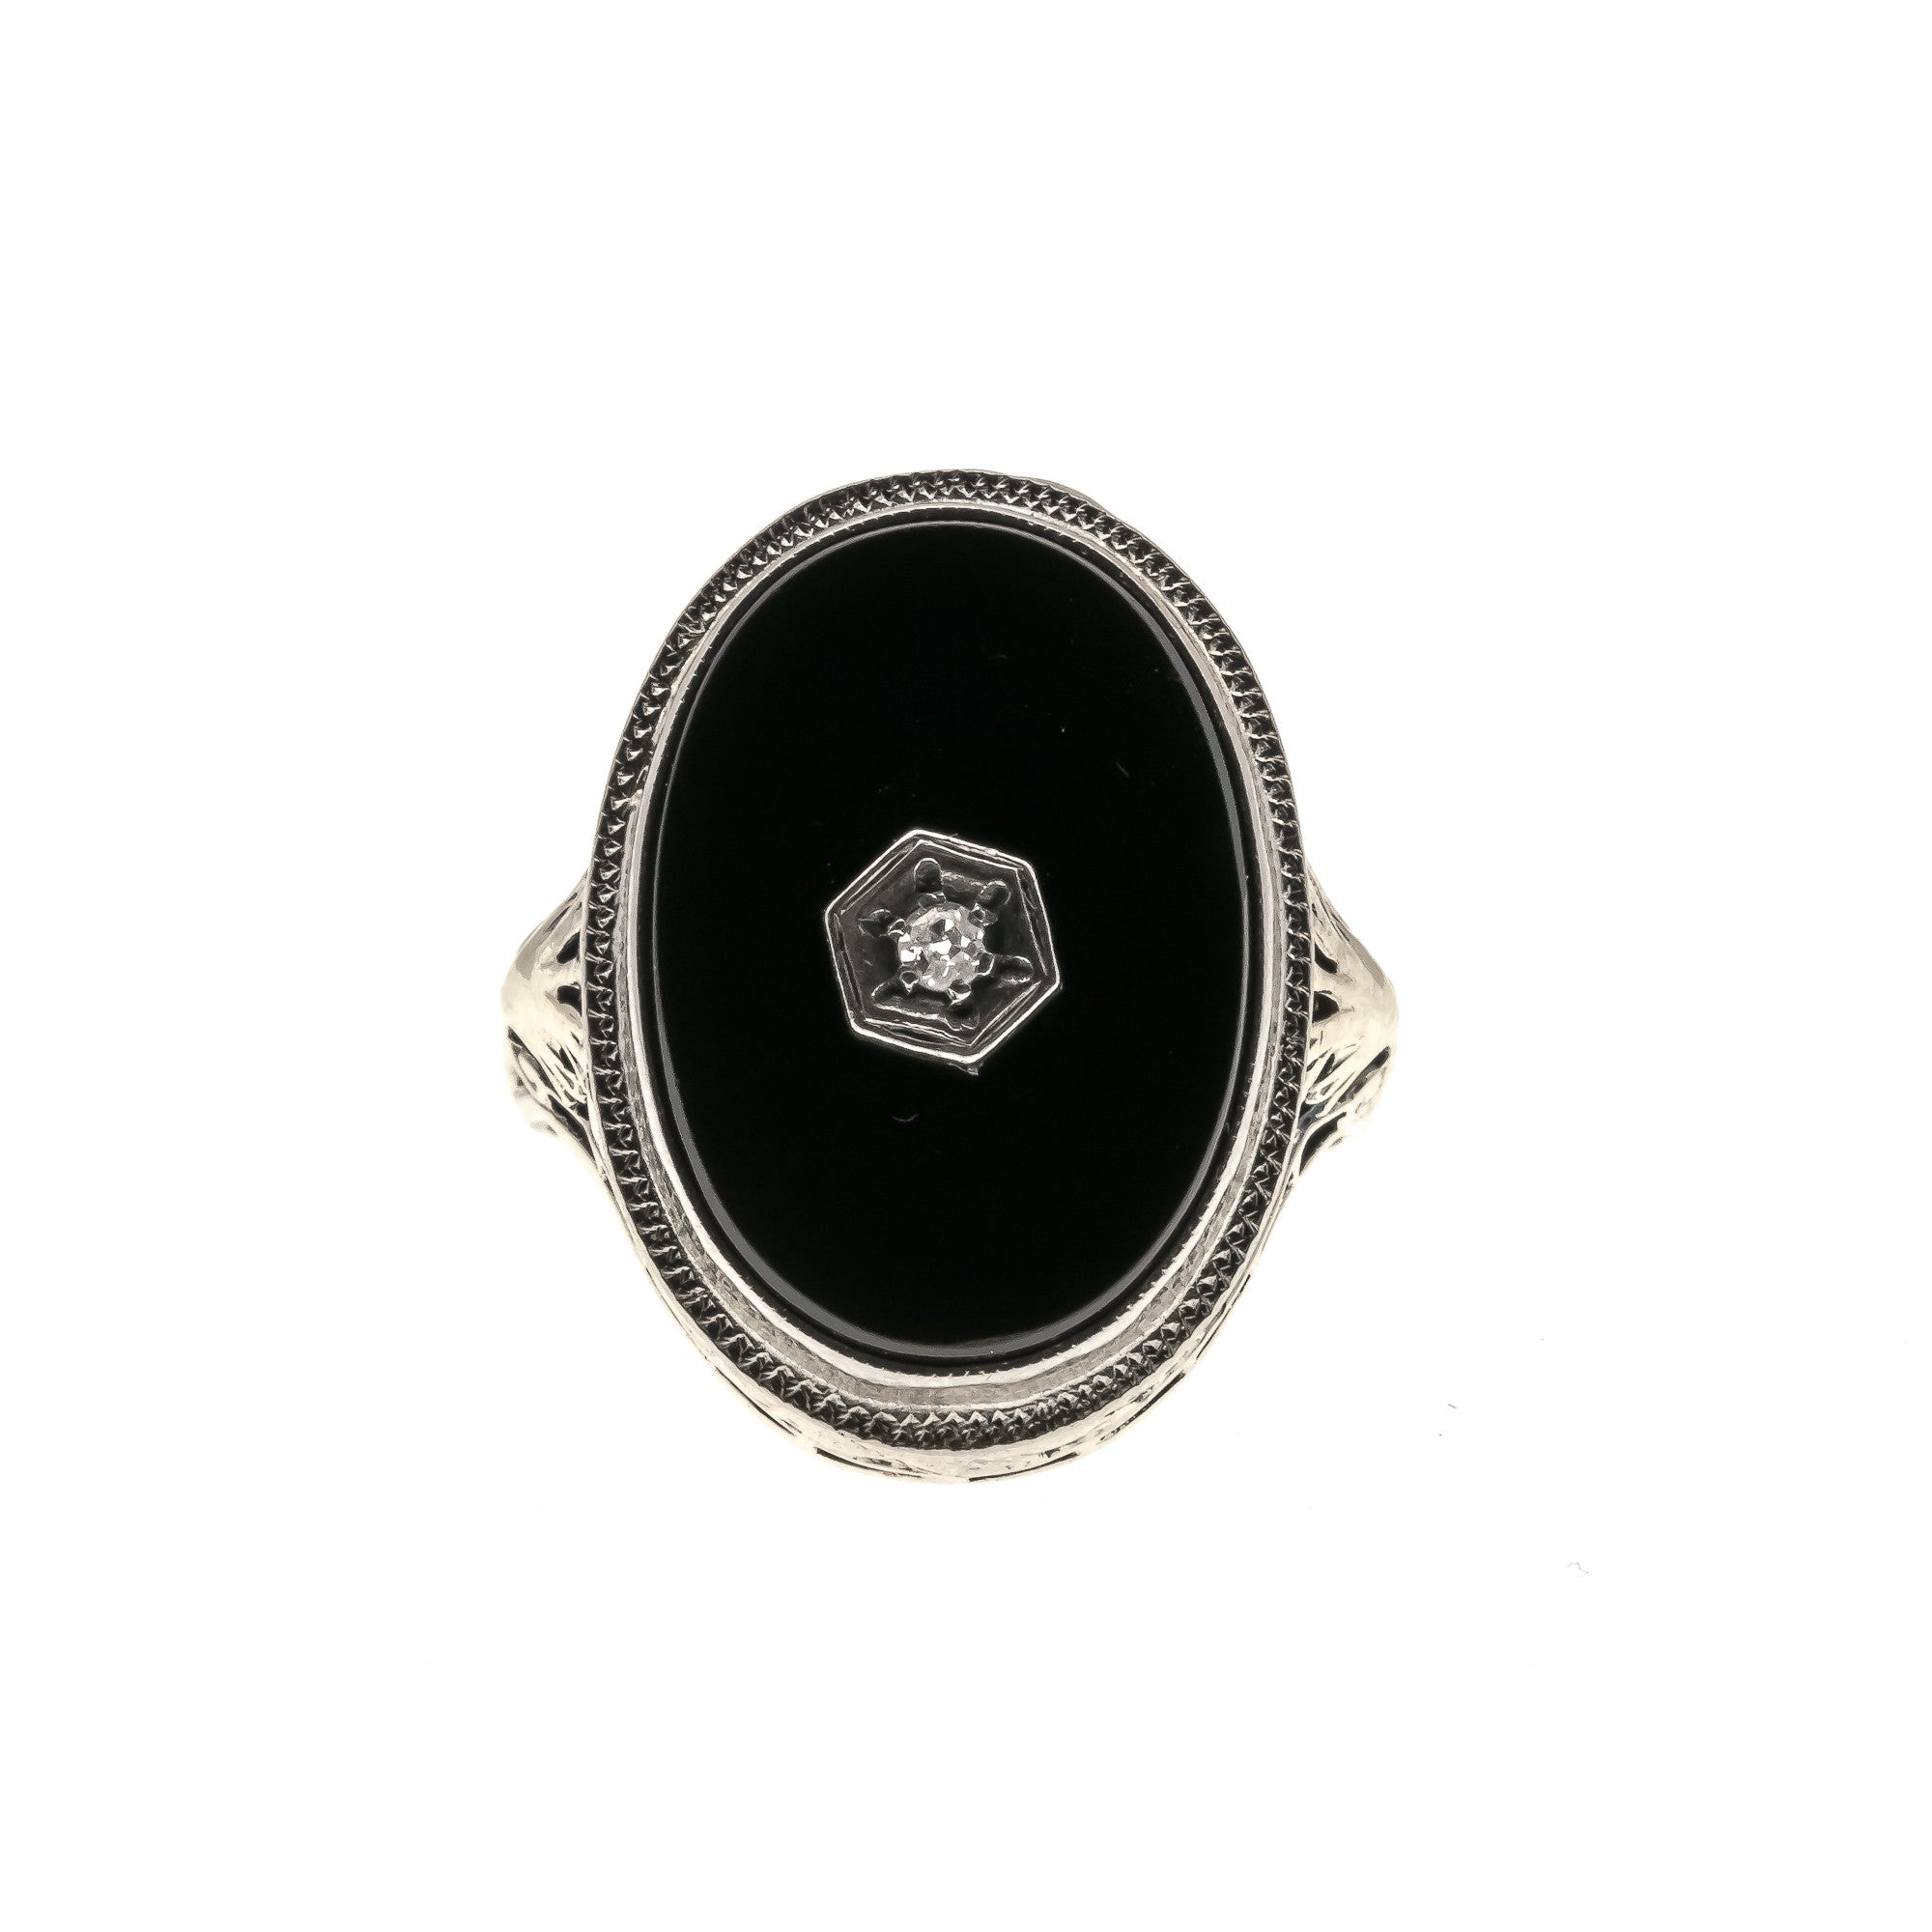 After Midnight - Art Deco 14K Onyx & Diamond Filigree Ring (ADR080)